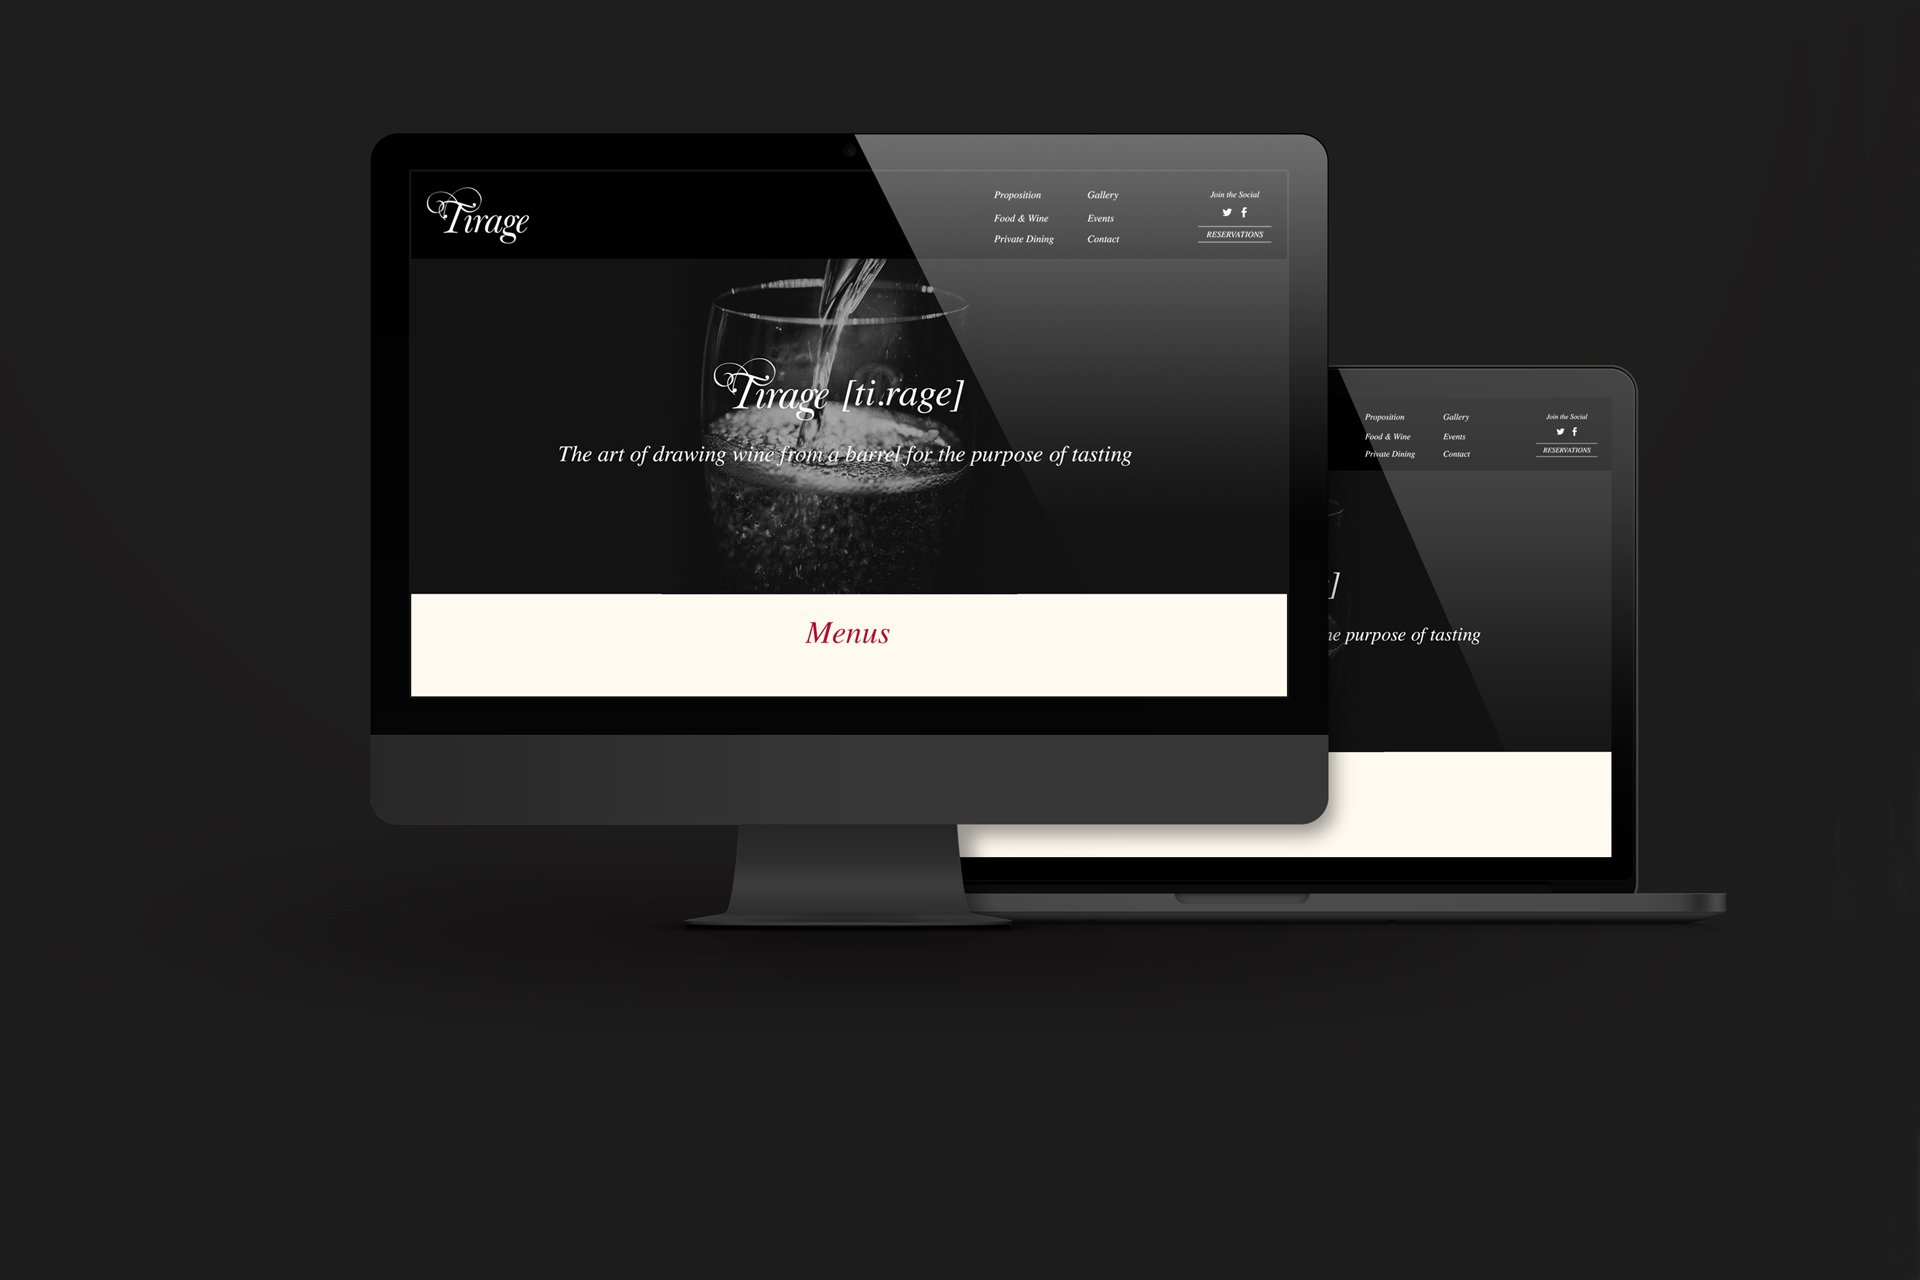 tirage champagne and tapas restaurant website